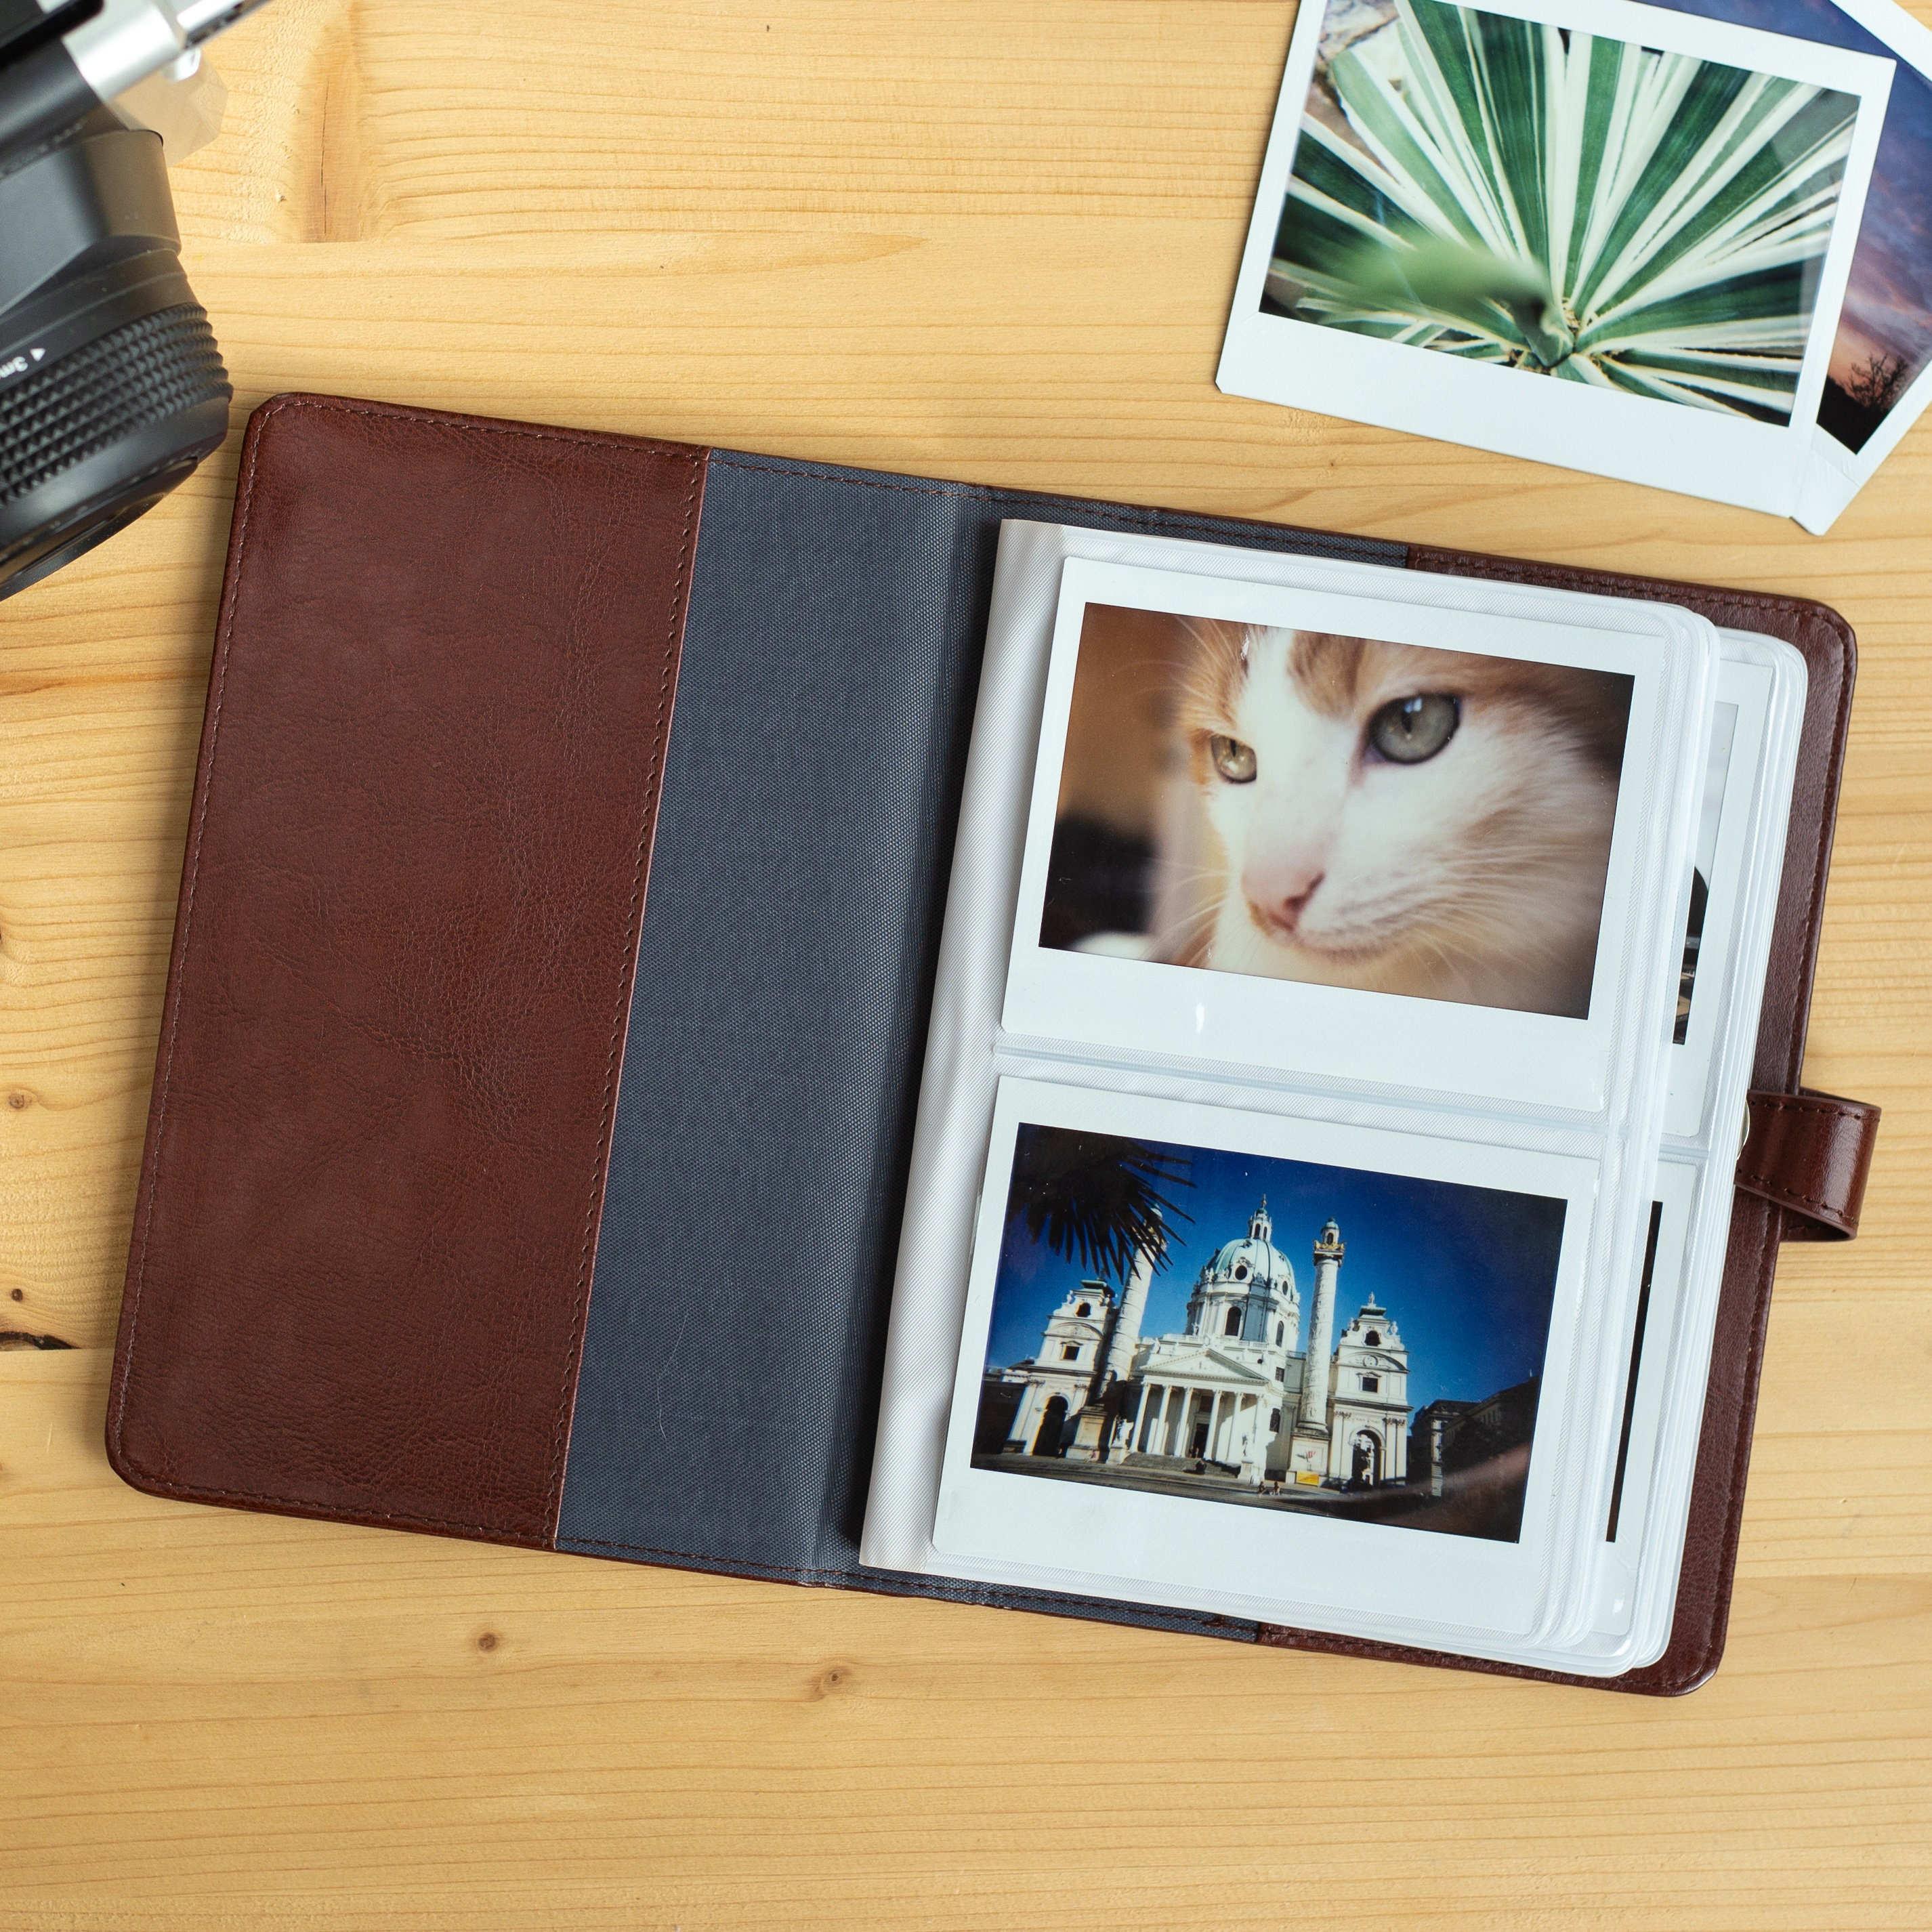 Instax Wide Photo Album For 64 Photos Instant Photo Album Etsy